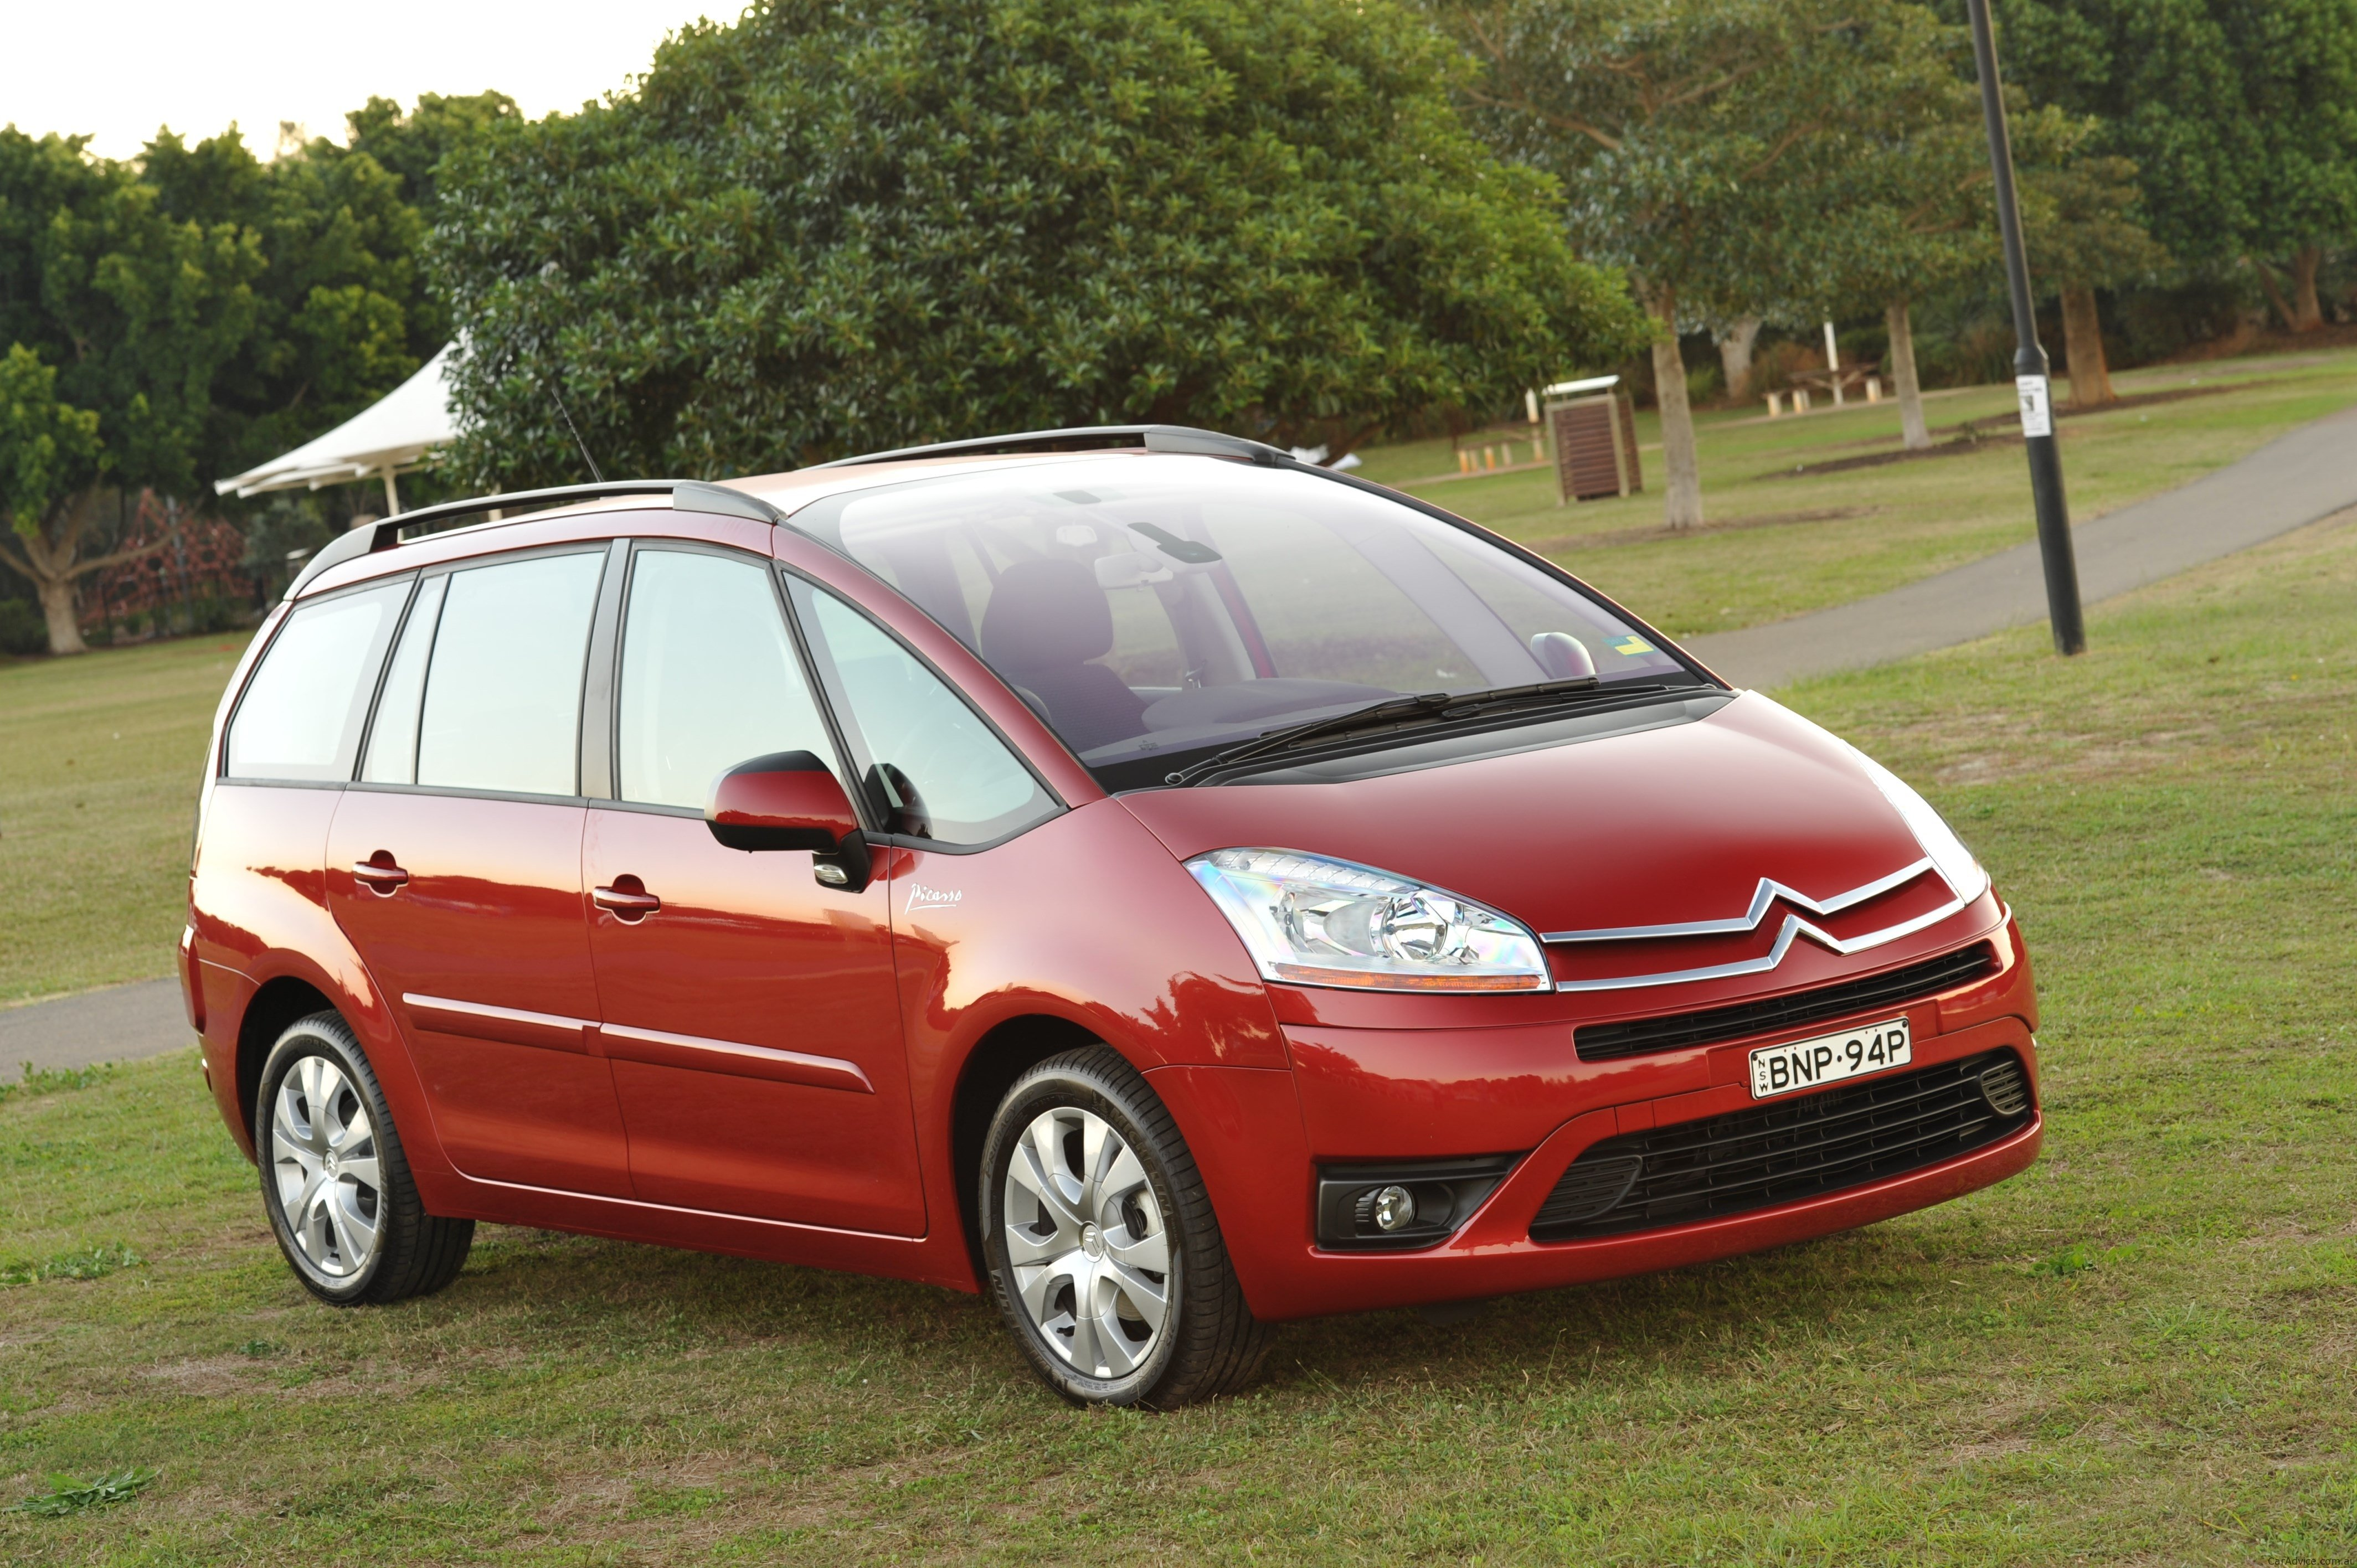 2010 citroen c4 picasso gets 6000 price cut photos caradvice. Black Bedroom Furniture Sets. Home Design Ideas